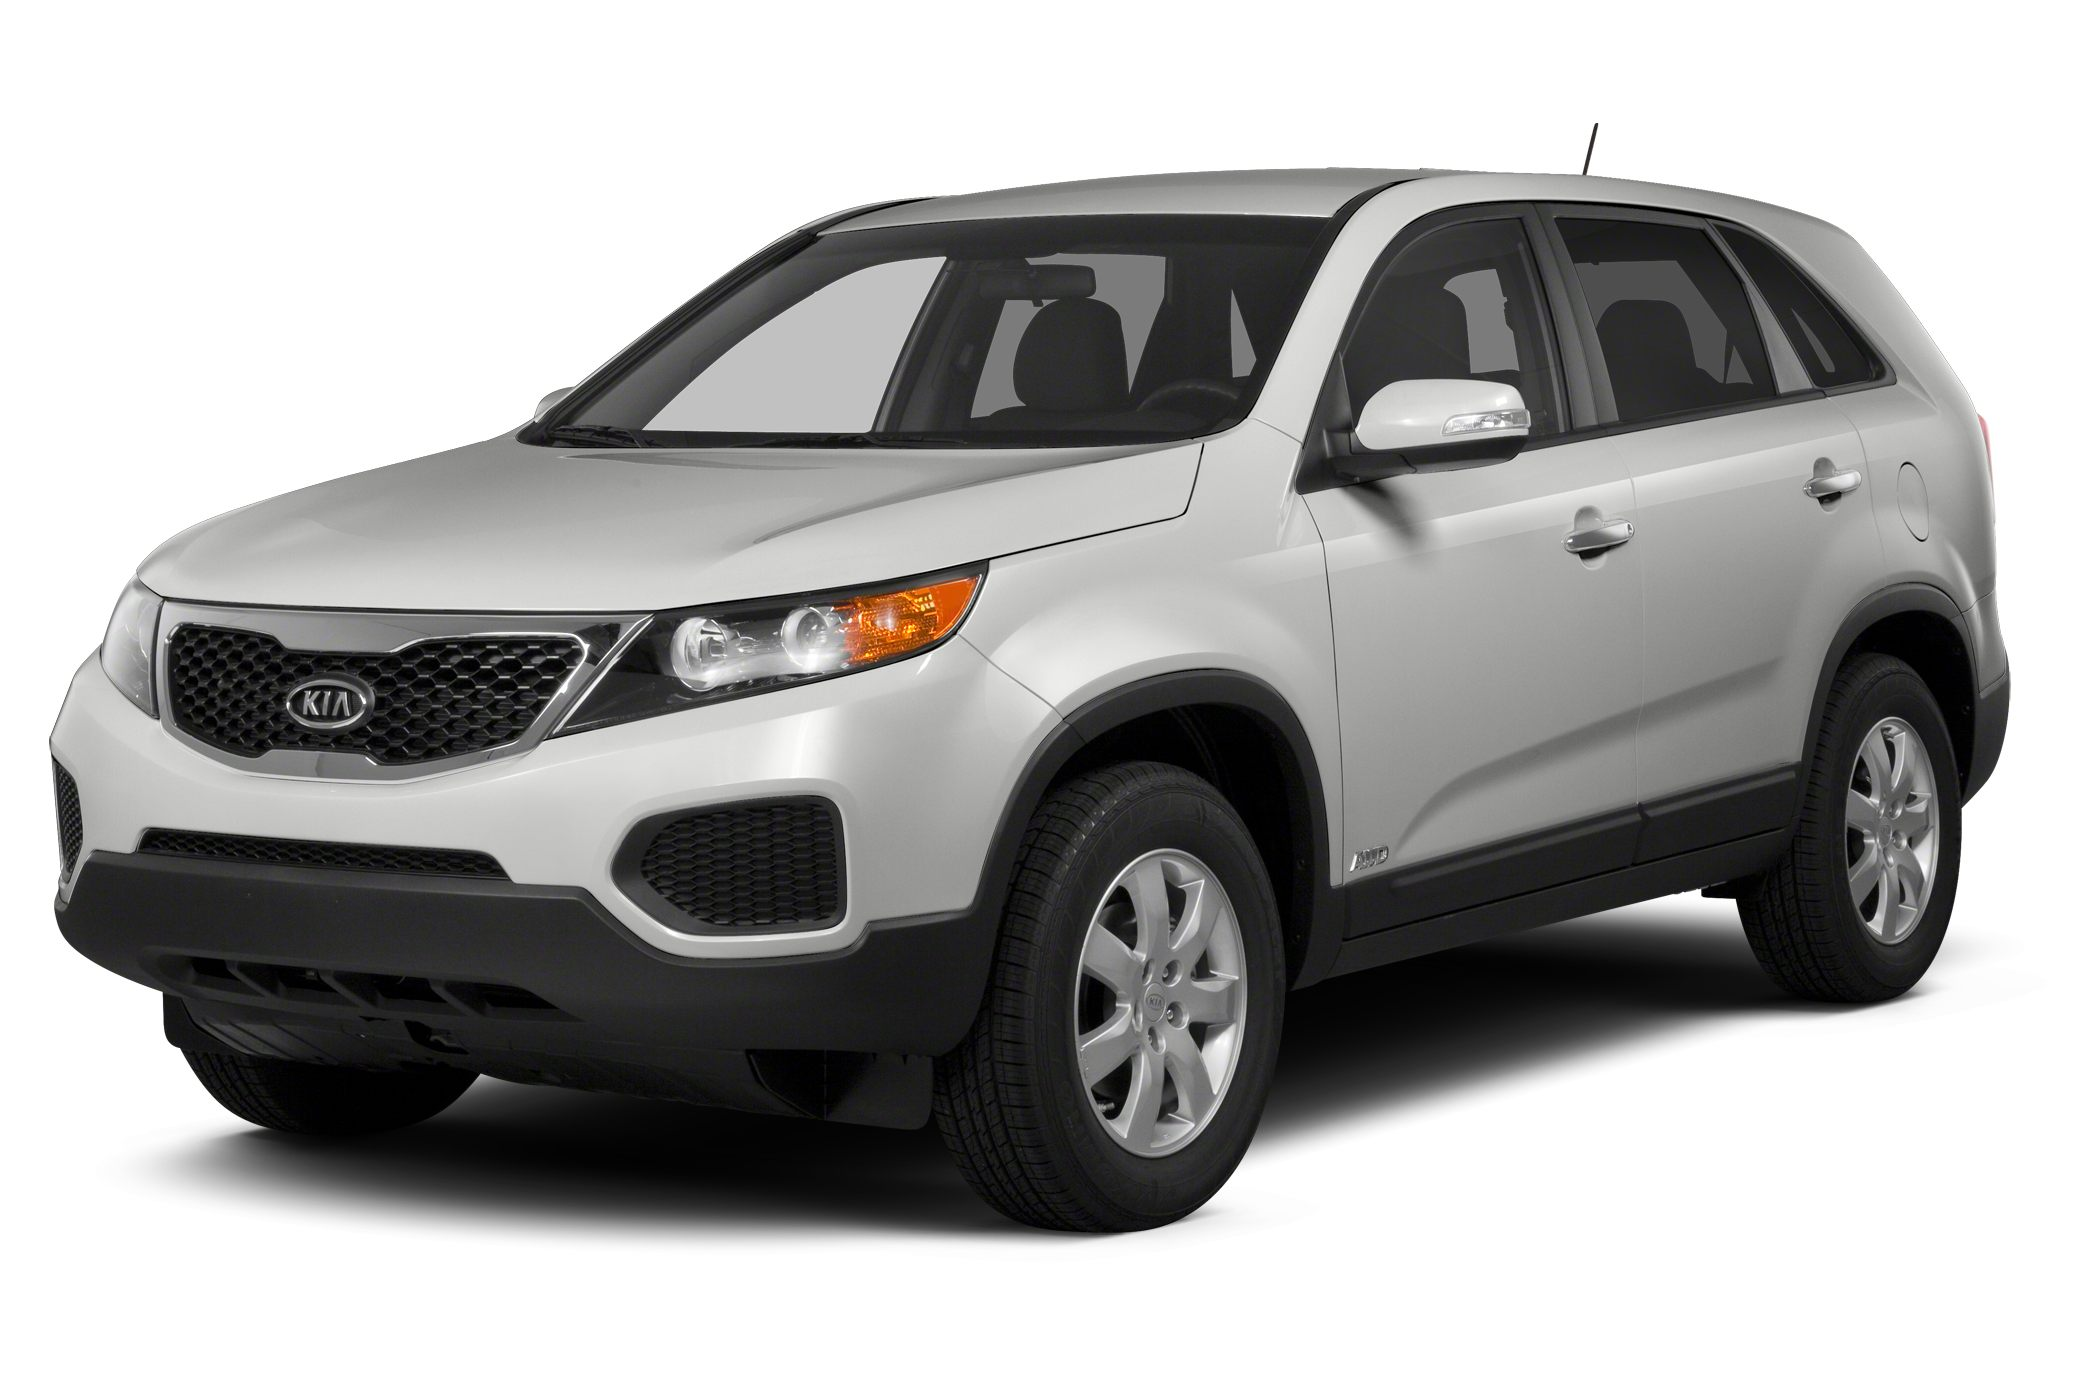 2012 Kia Sorento LX SUV for sale in Wabash for $19,658 with 37,176 miles